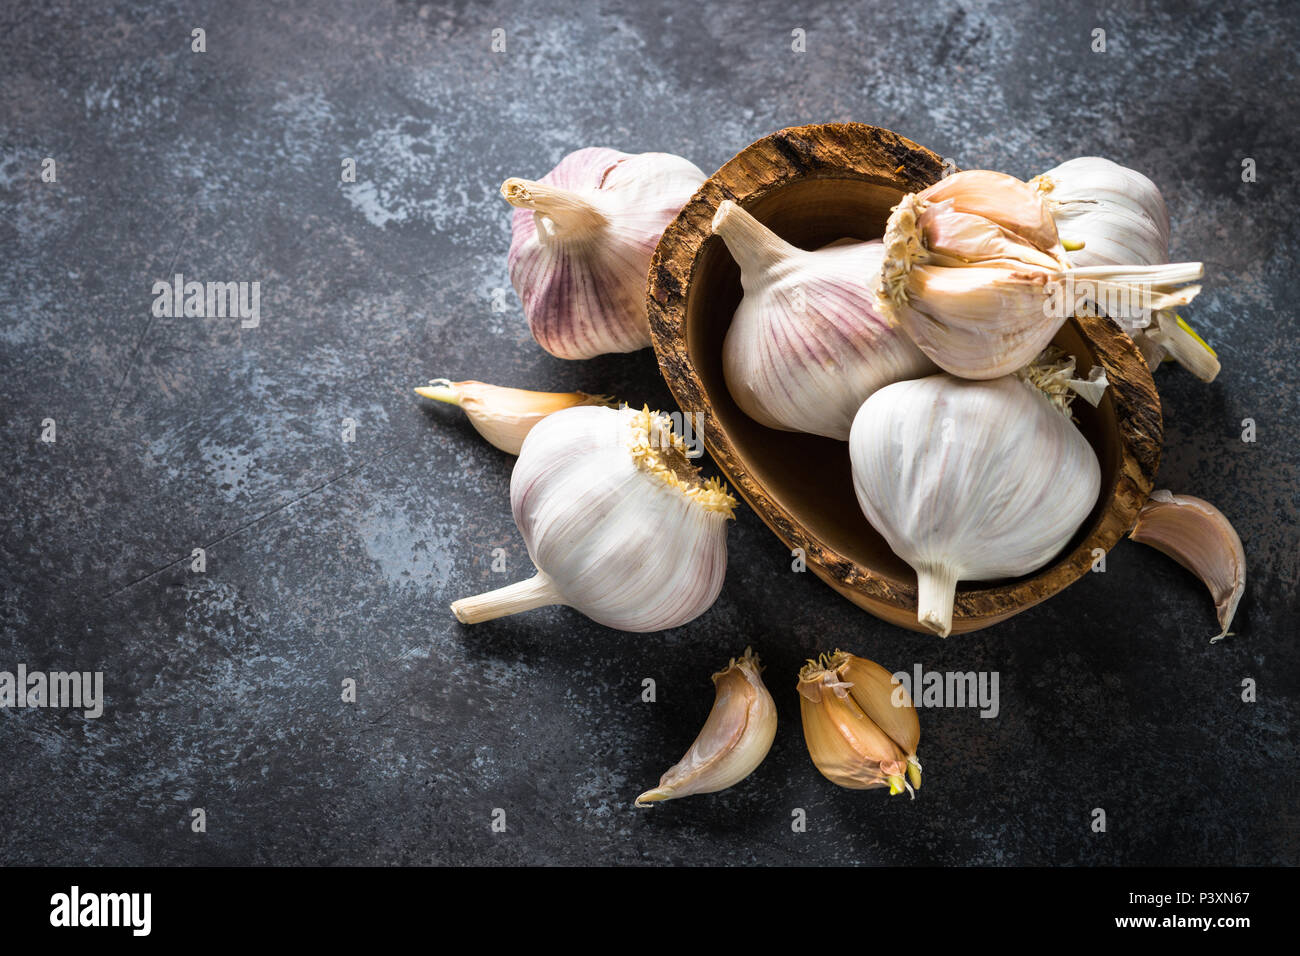 Garlic cloves on a dark stone background. Top view, Copy space. - Stock Image